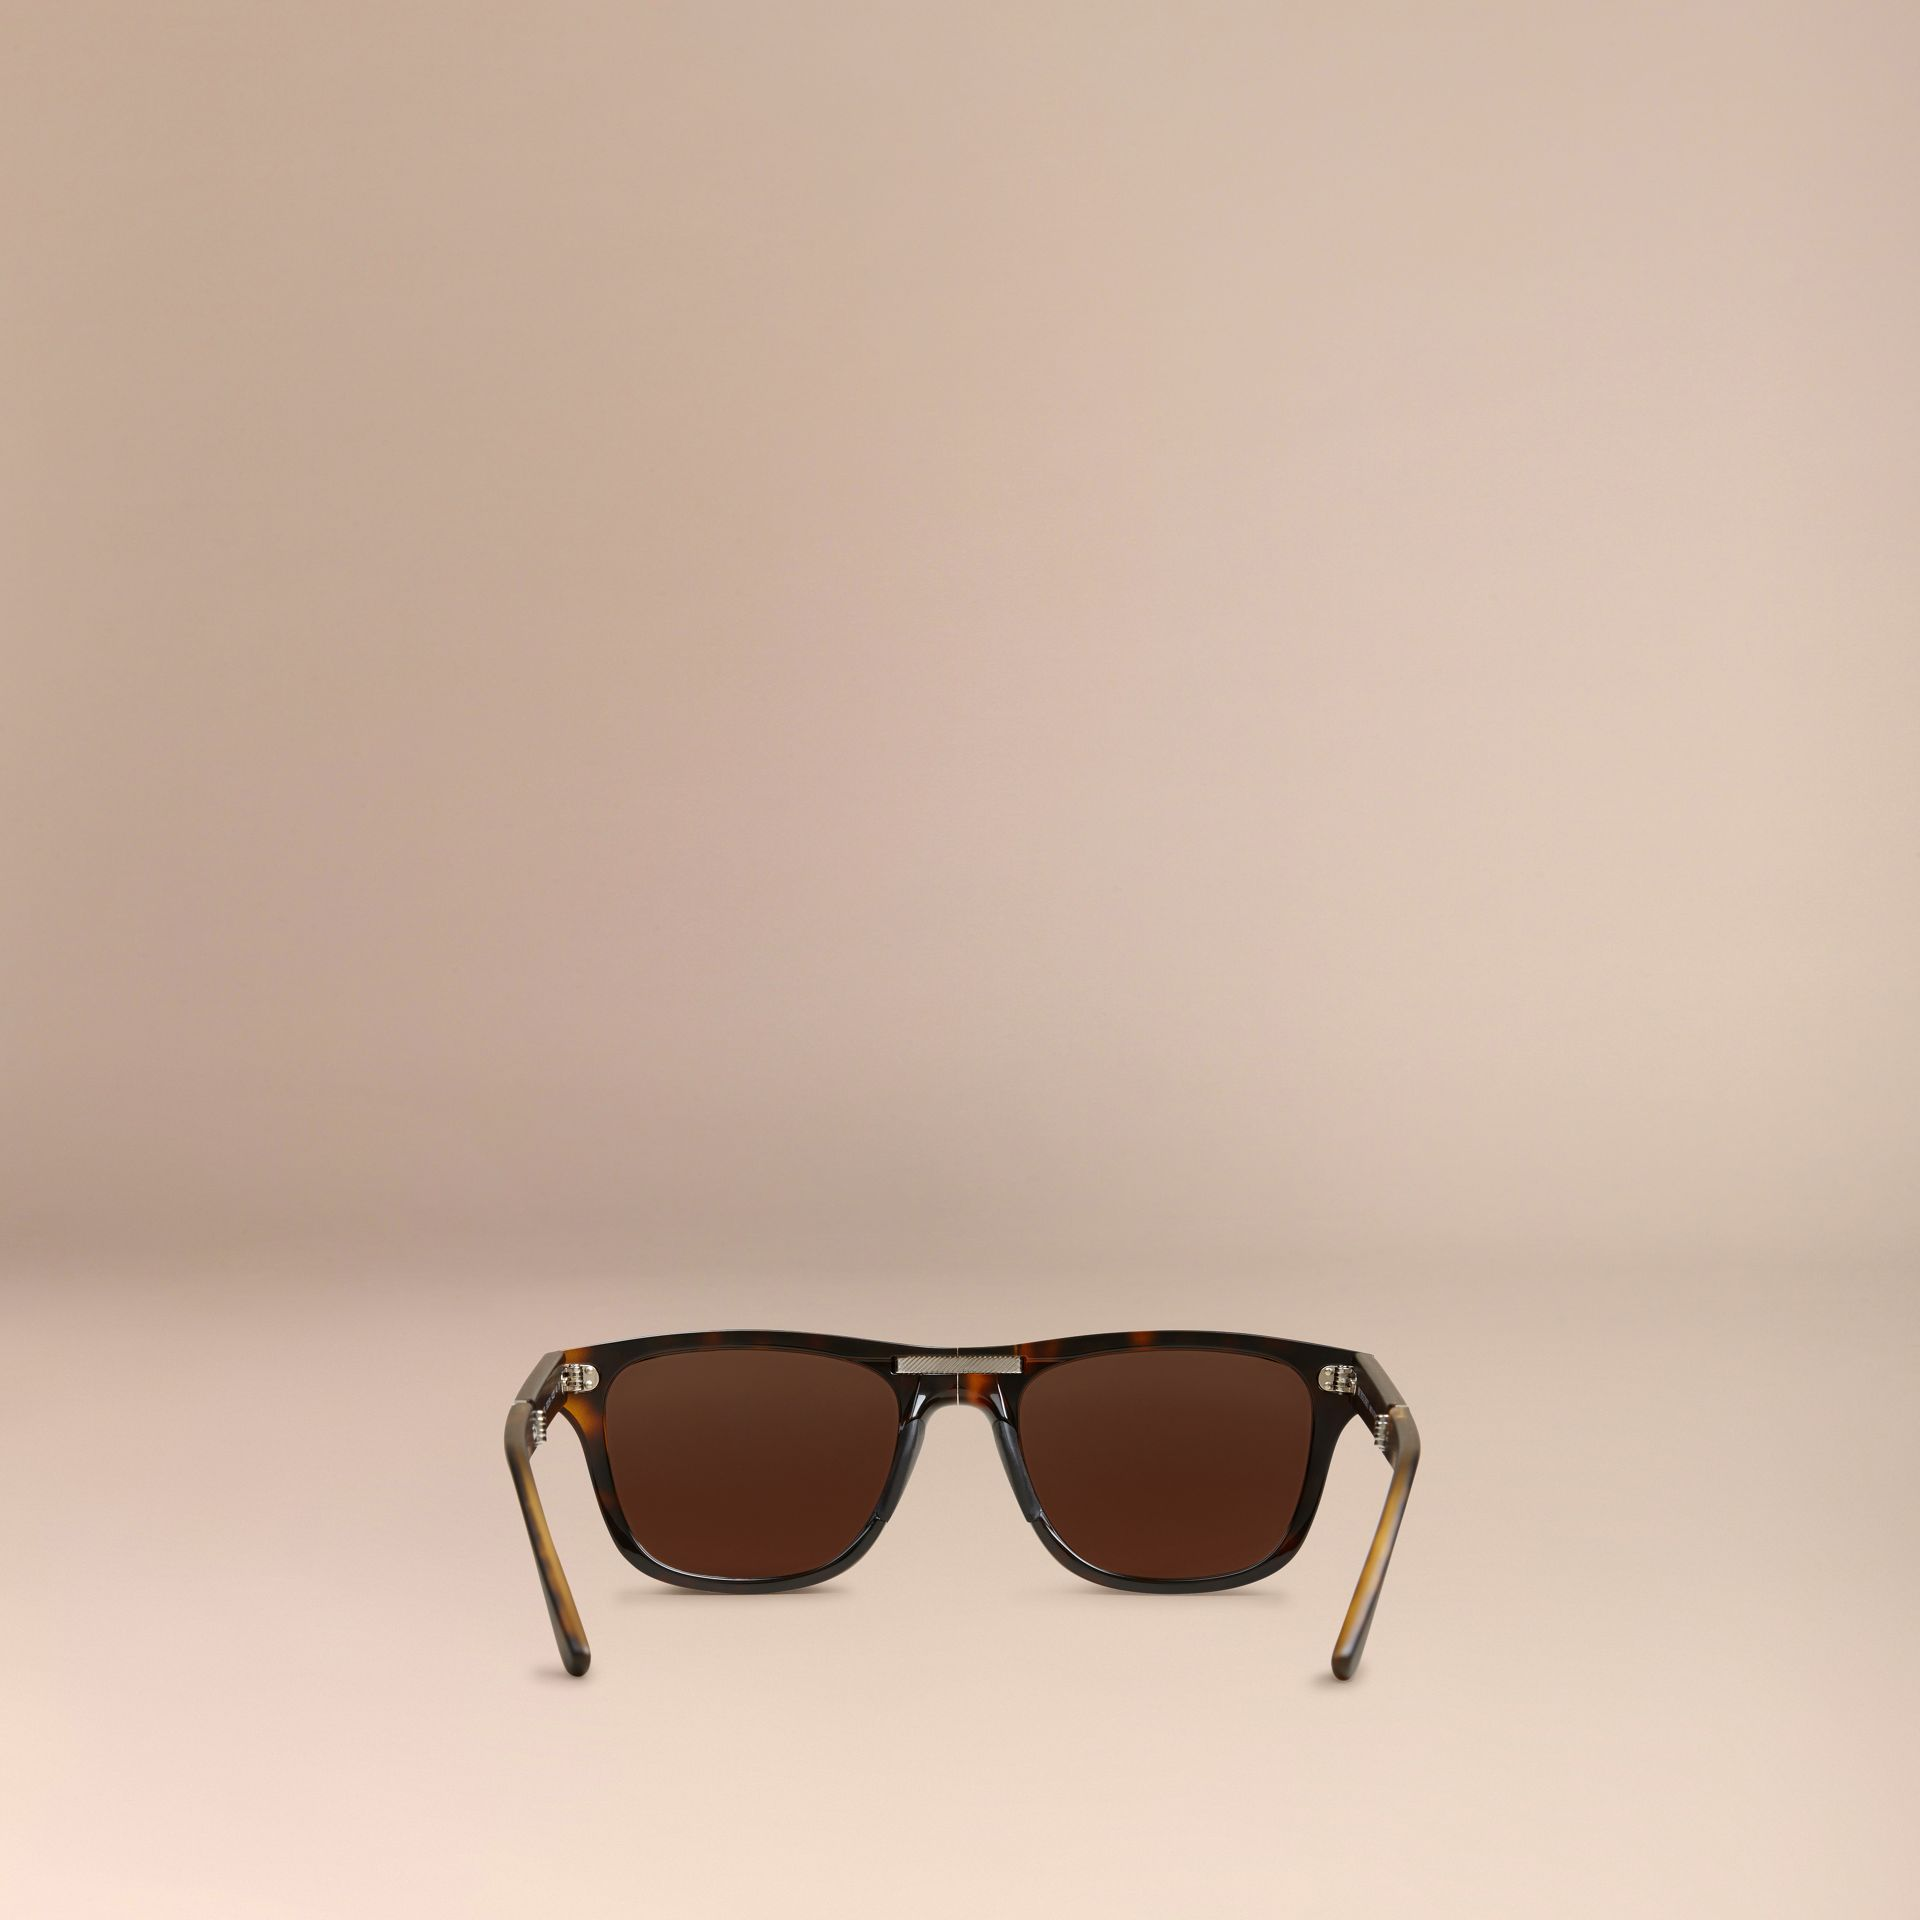 Folding Rectangular Frame Sunglasses in Dark Brown - Men | Burberry Canada - gallery image 3